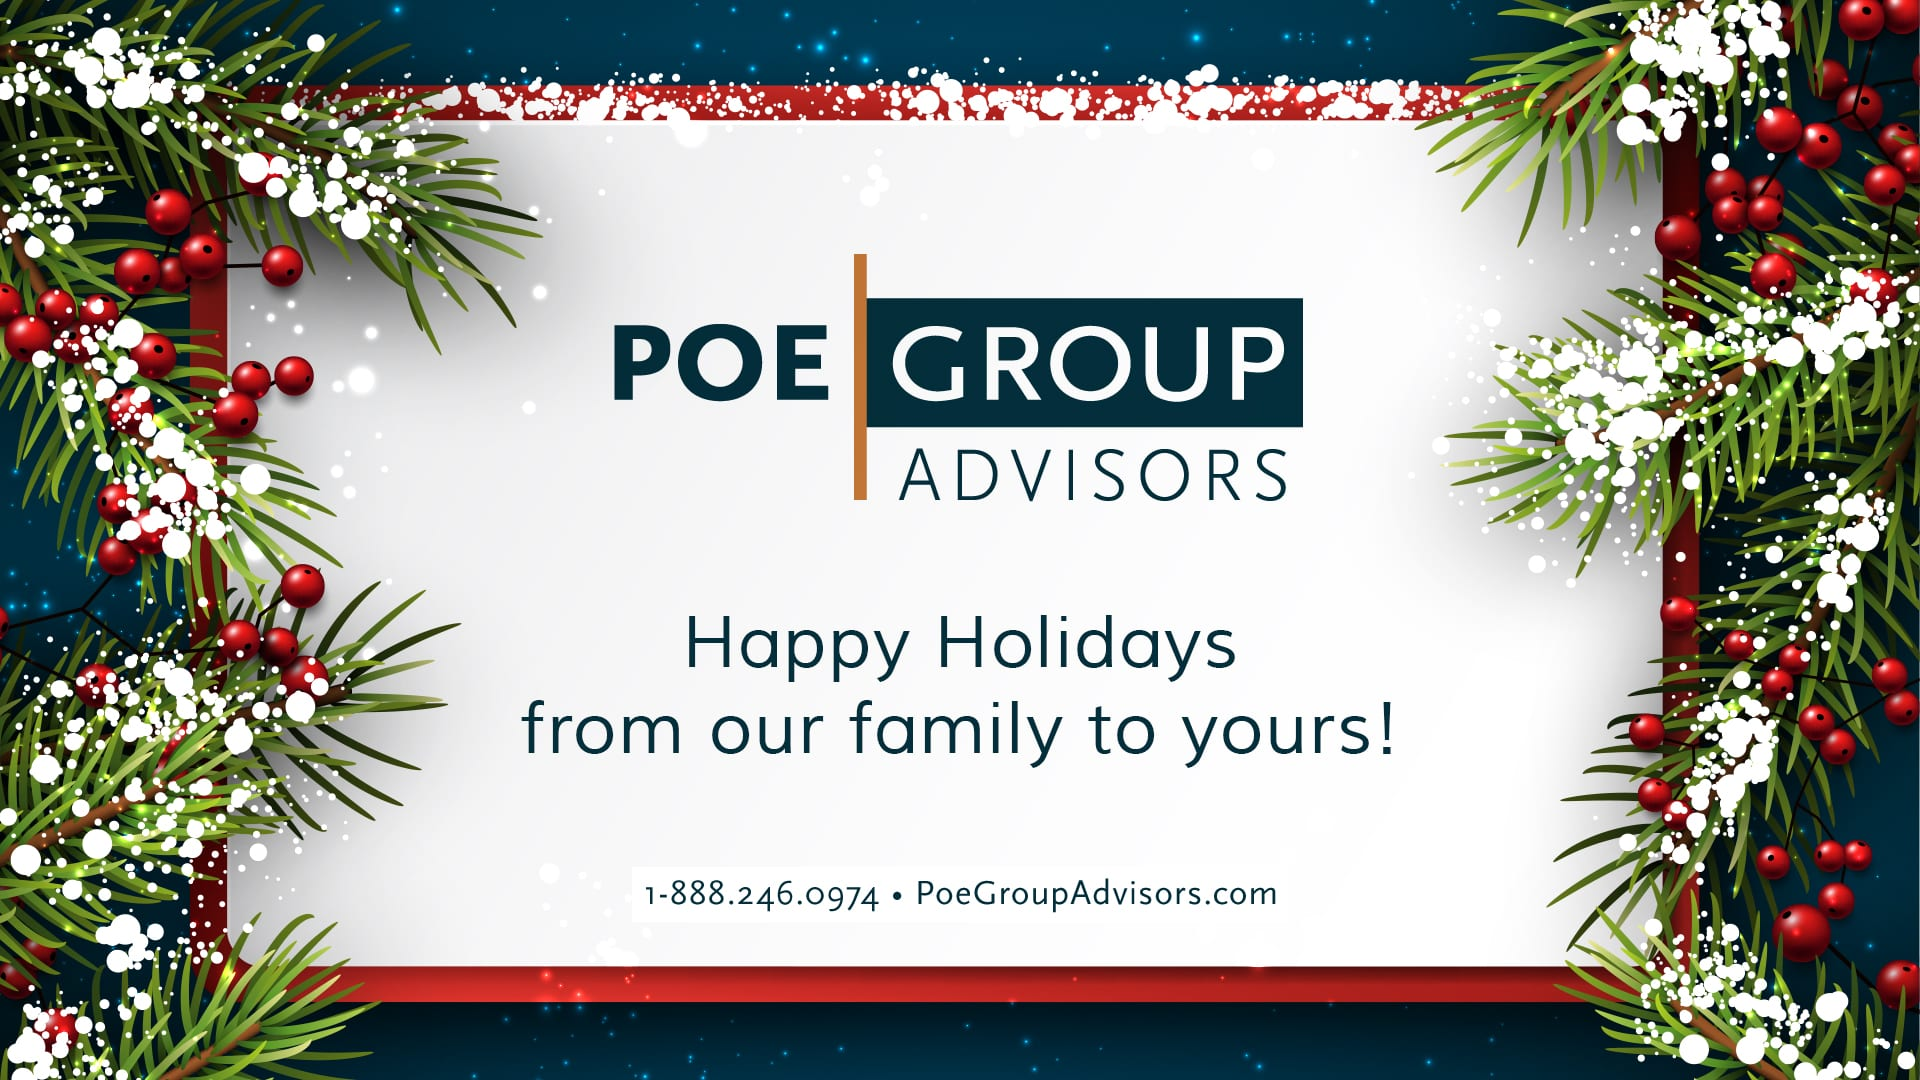 Happy Holidays from Poe Group Advisors